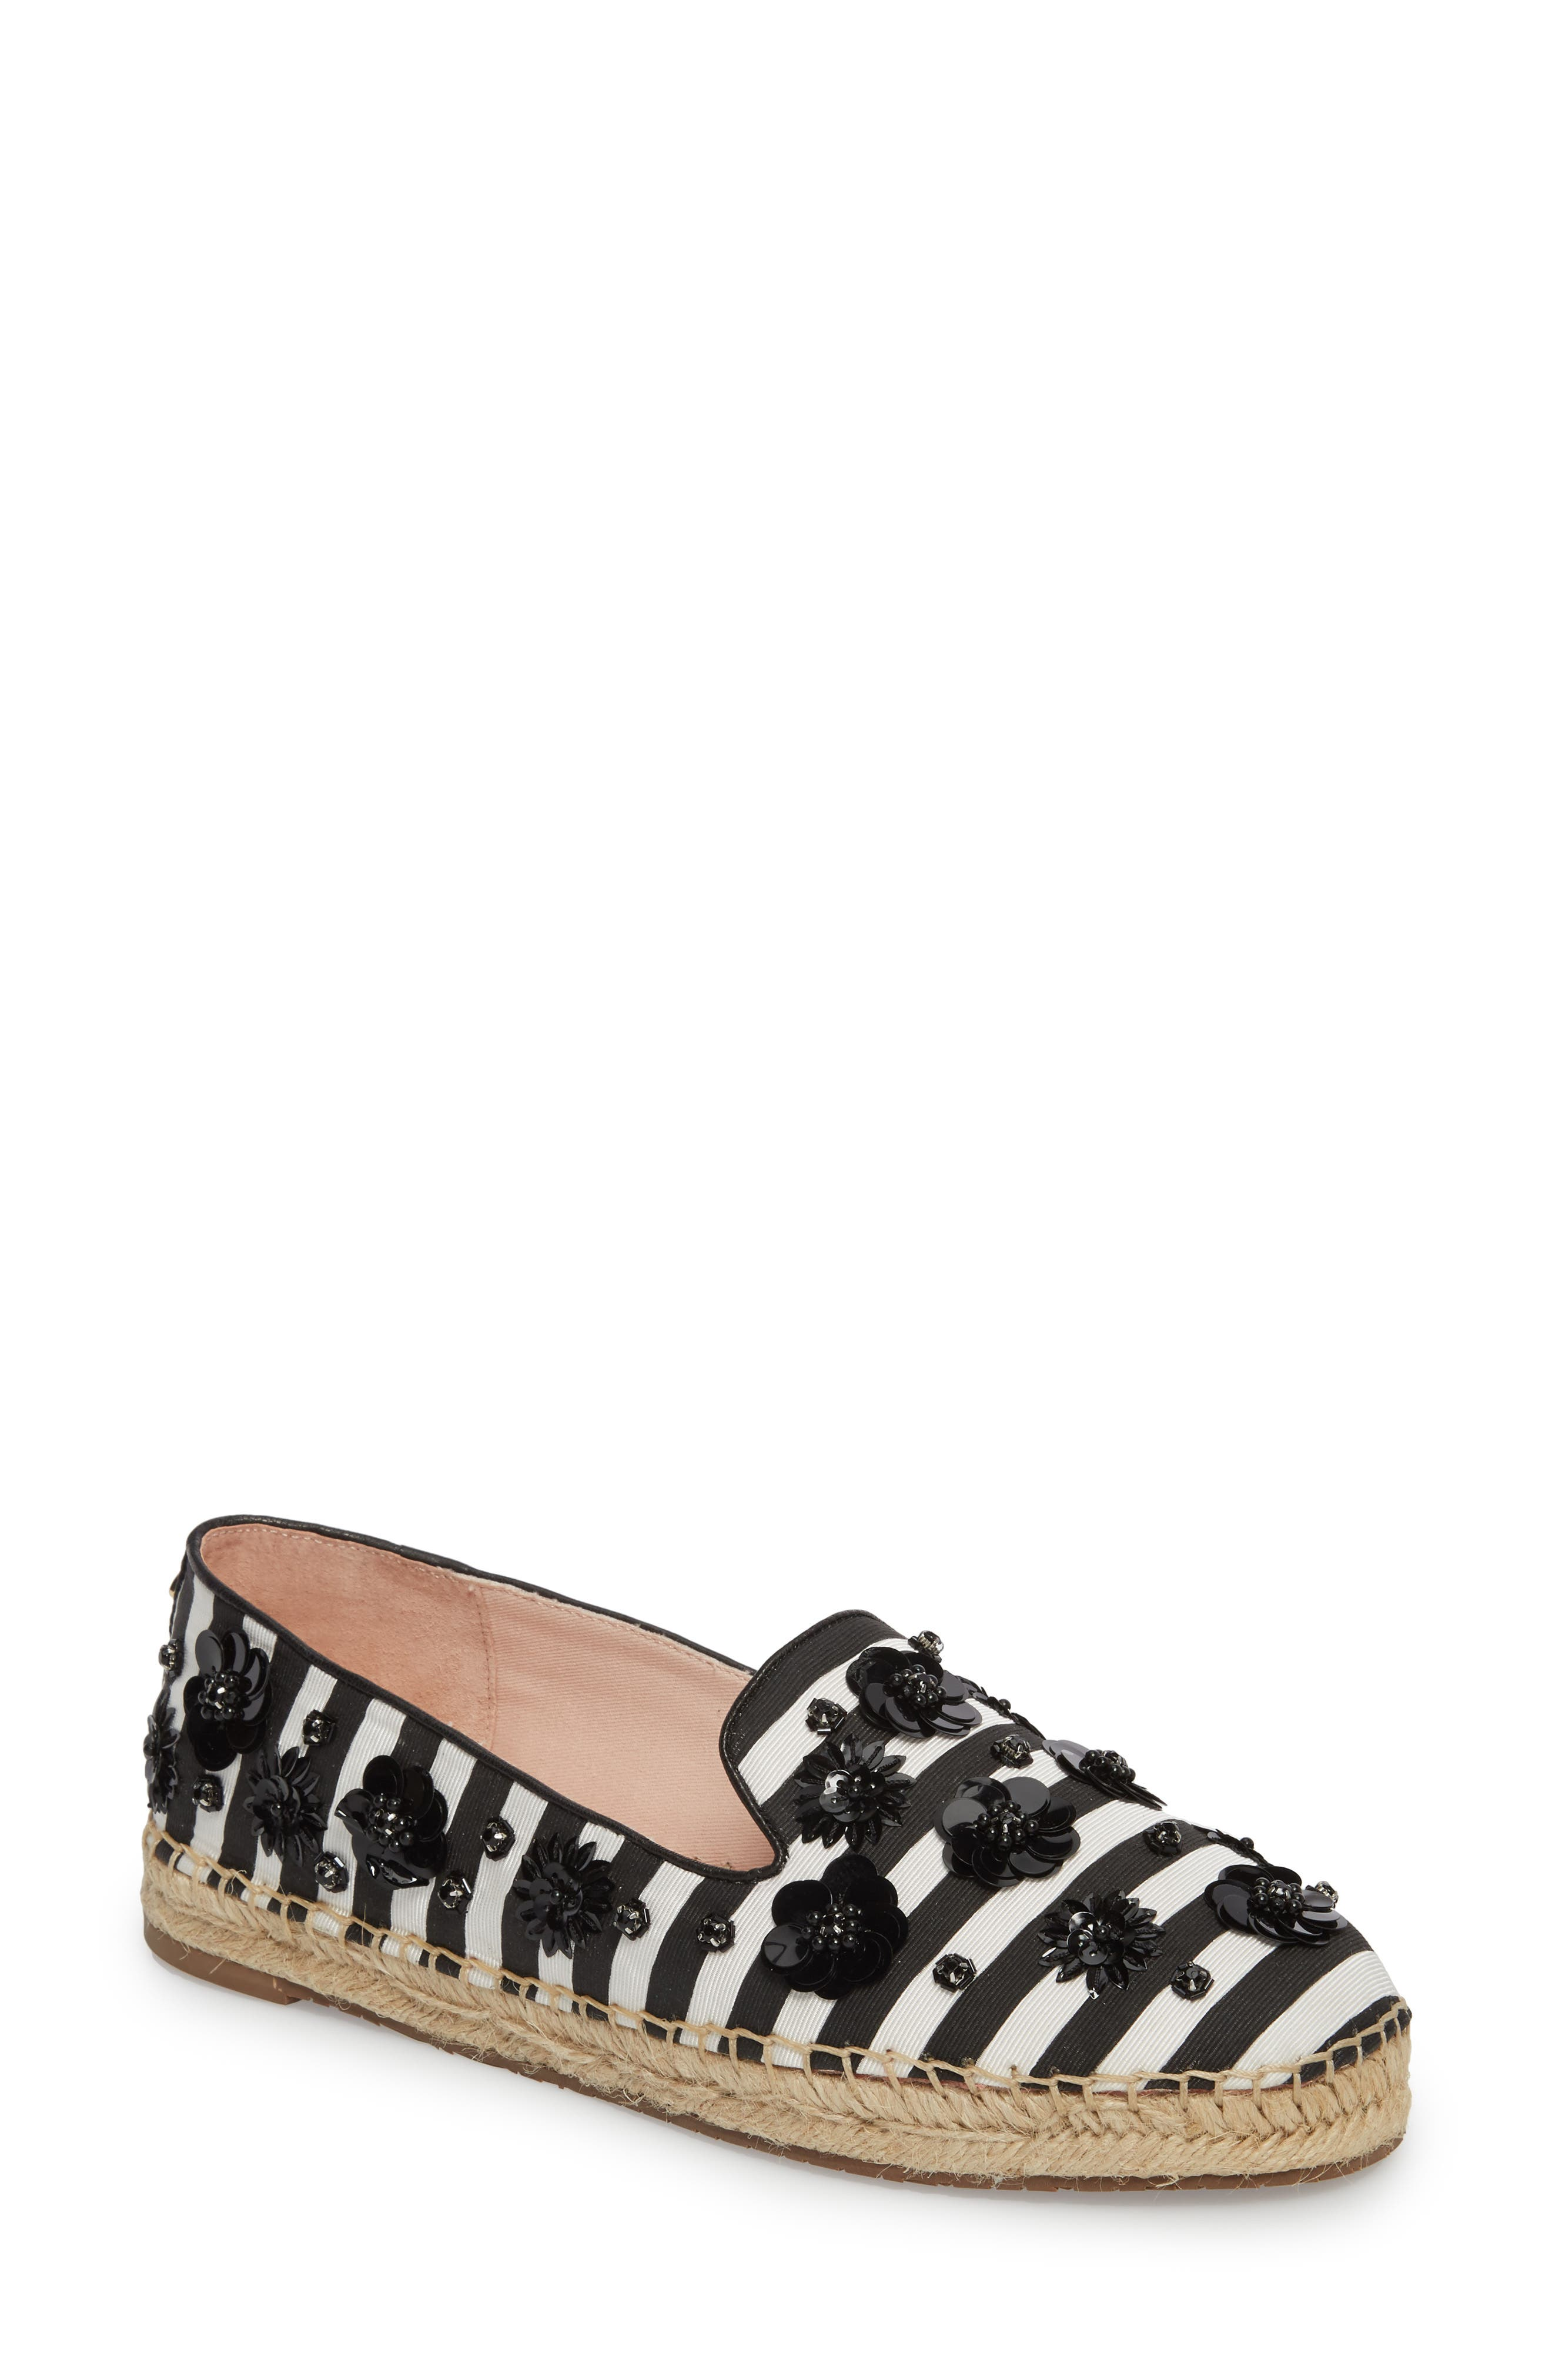 leigh embellished espadrille flat,                             Main thumbnail 1, color,